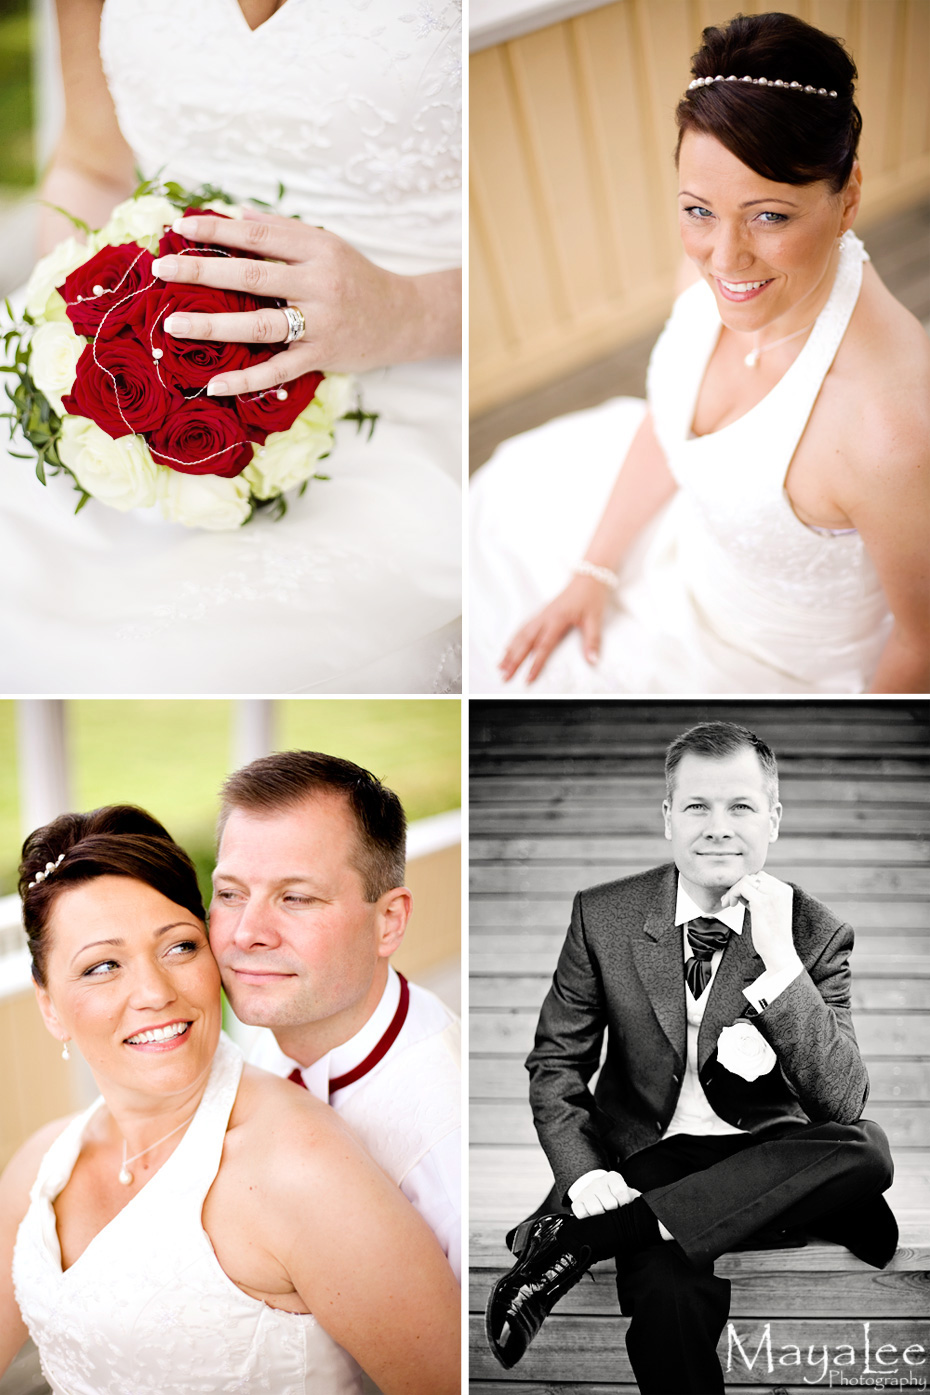 mayalee_wedding_sweden_sara_conny14.jpg